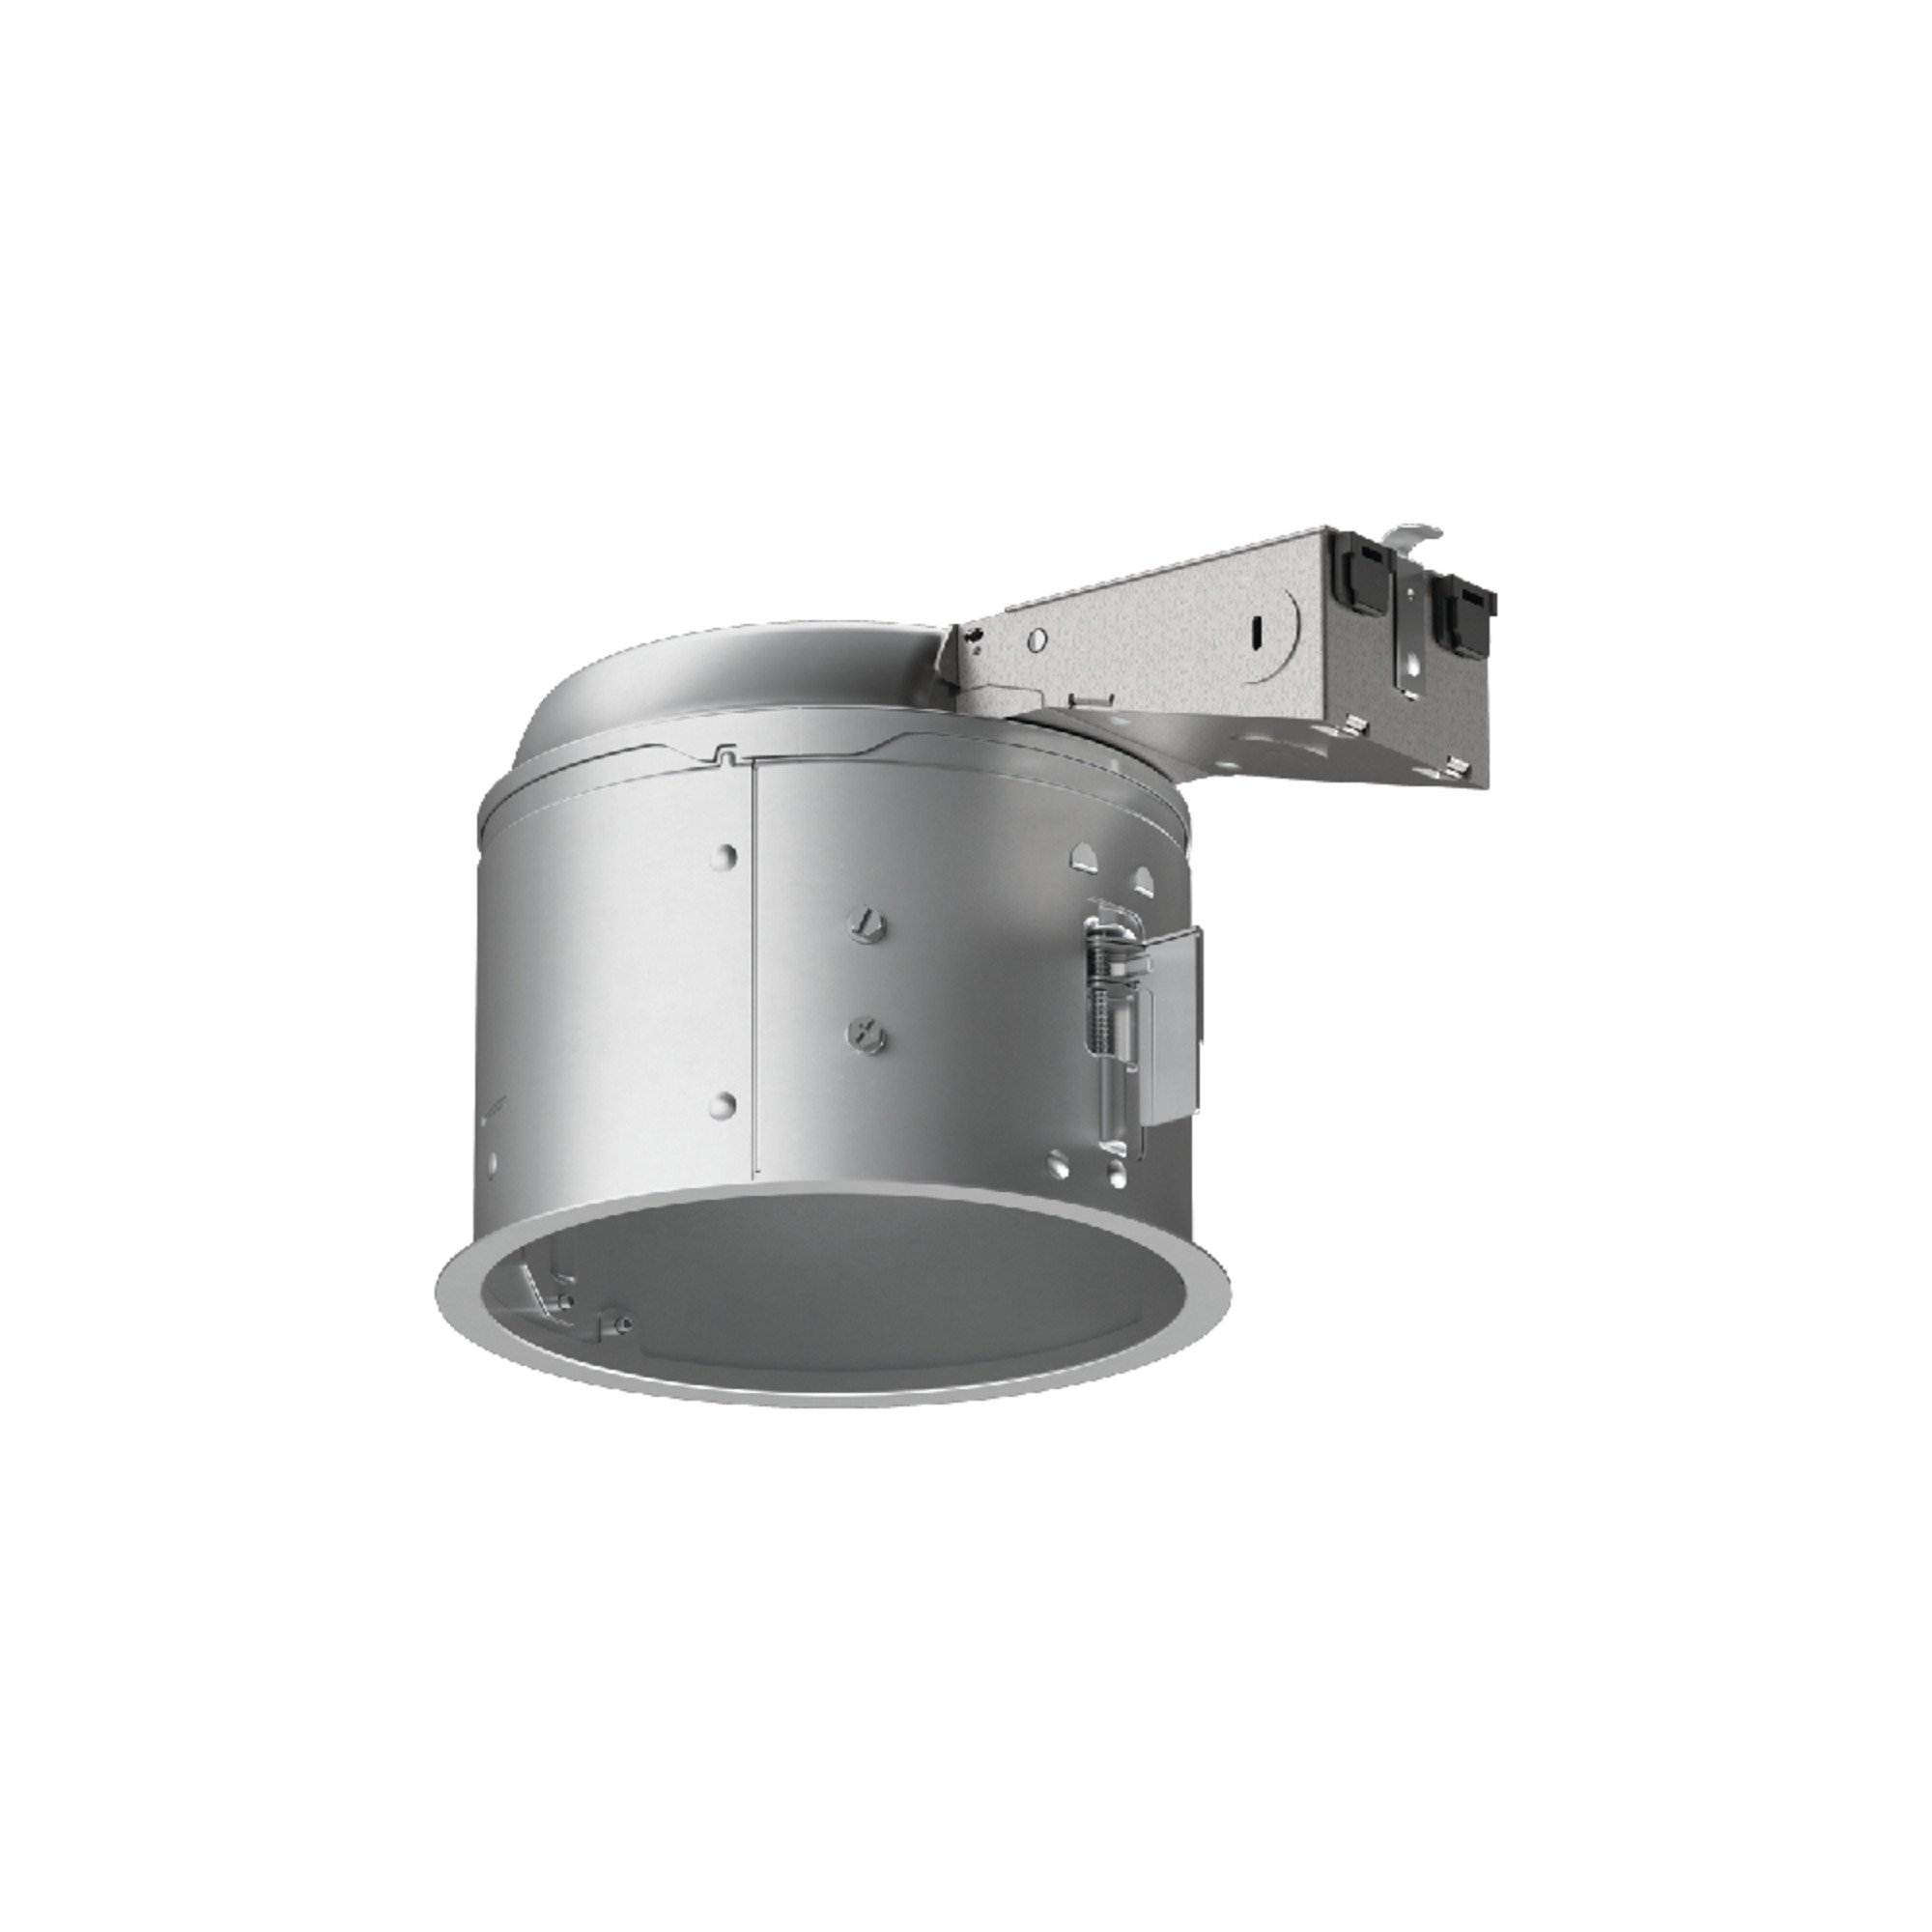 Halo E27RICAT E26 Series Recessed Lighting Shallow Remodel Insulation Contact Rated Air-Tite Housing, 6'', Aluminum